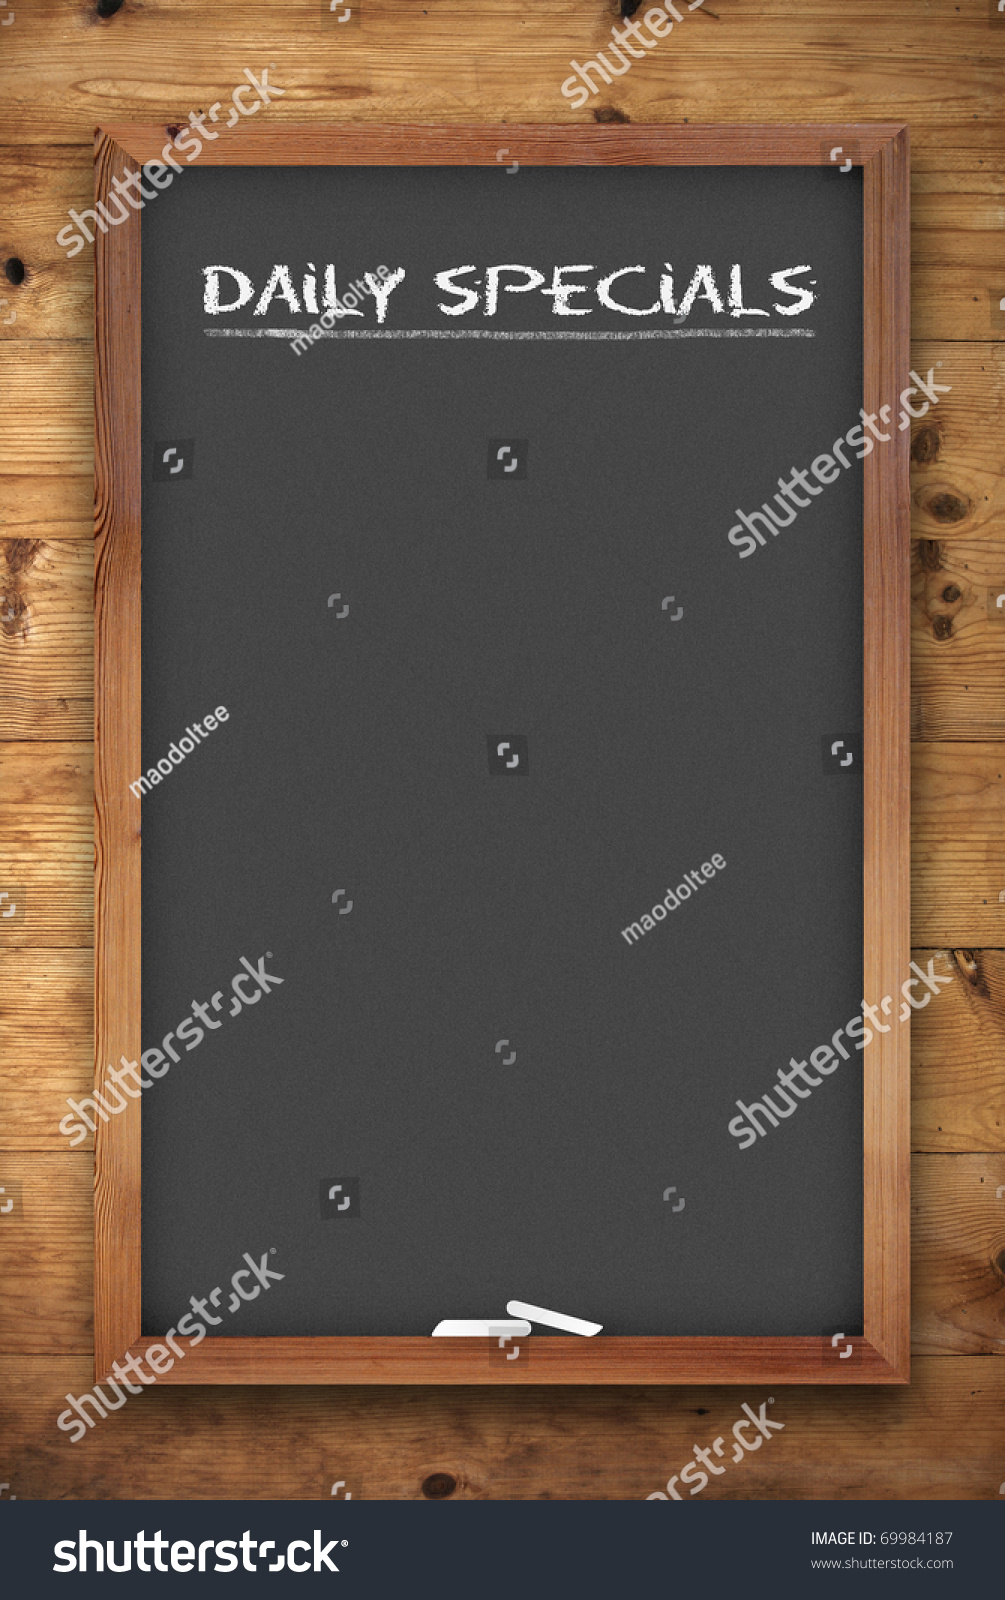 chalkboard menu daily specials title on stock illustration